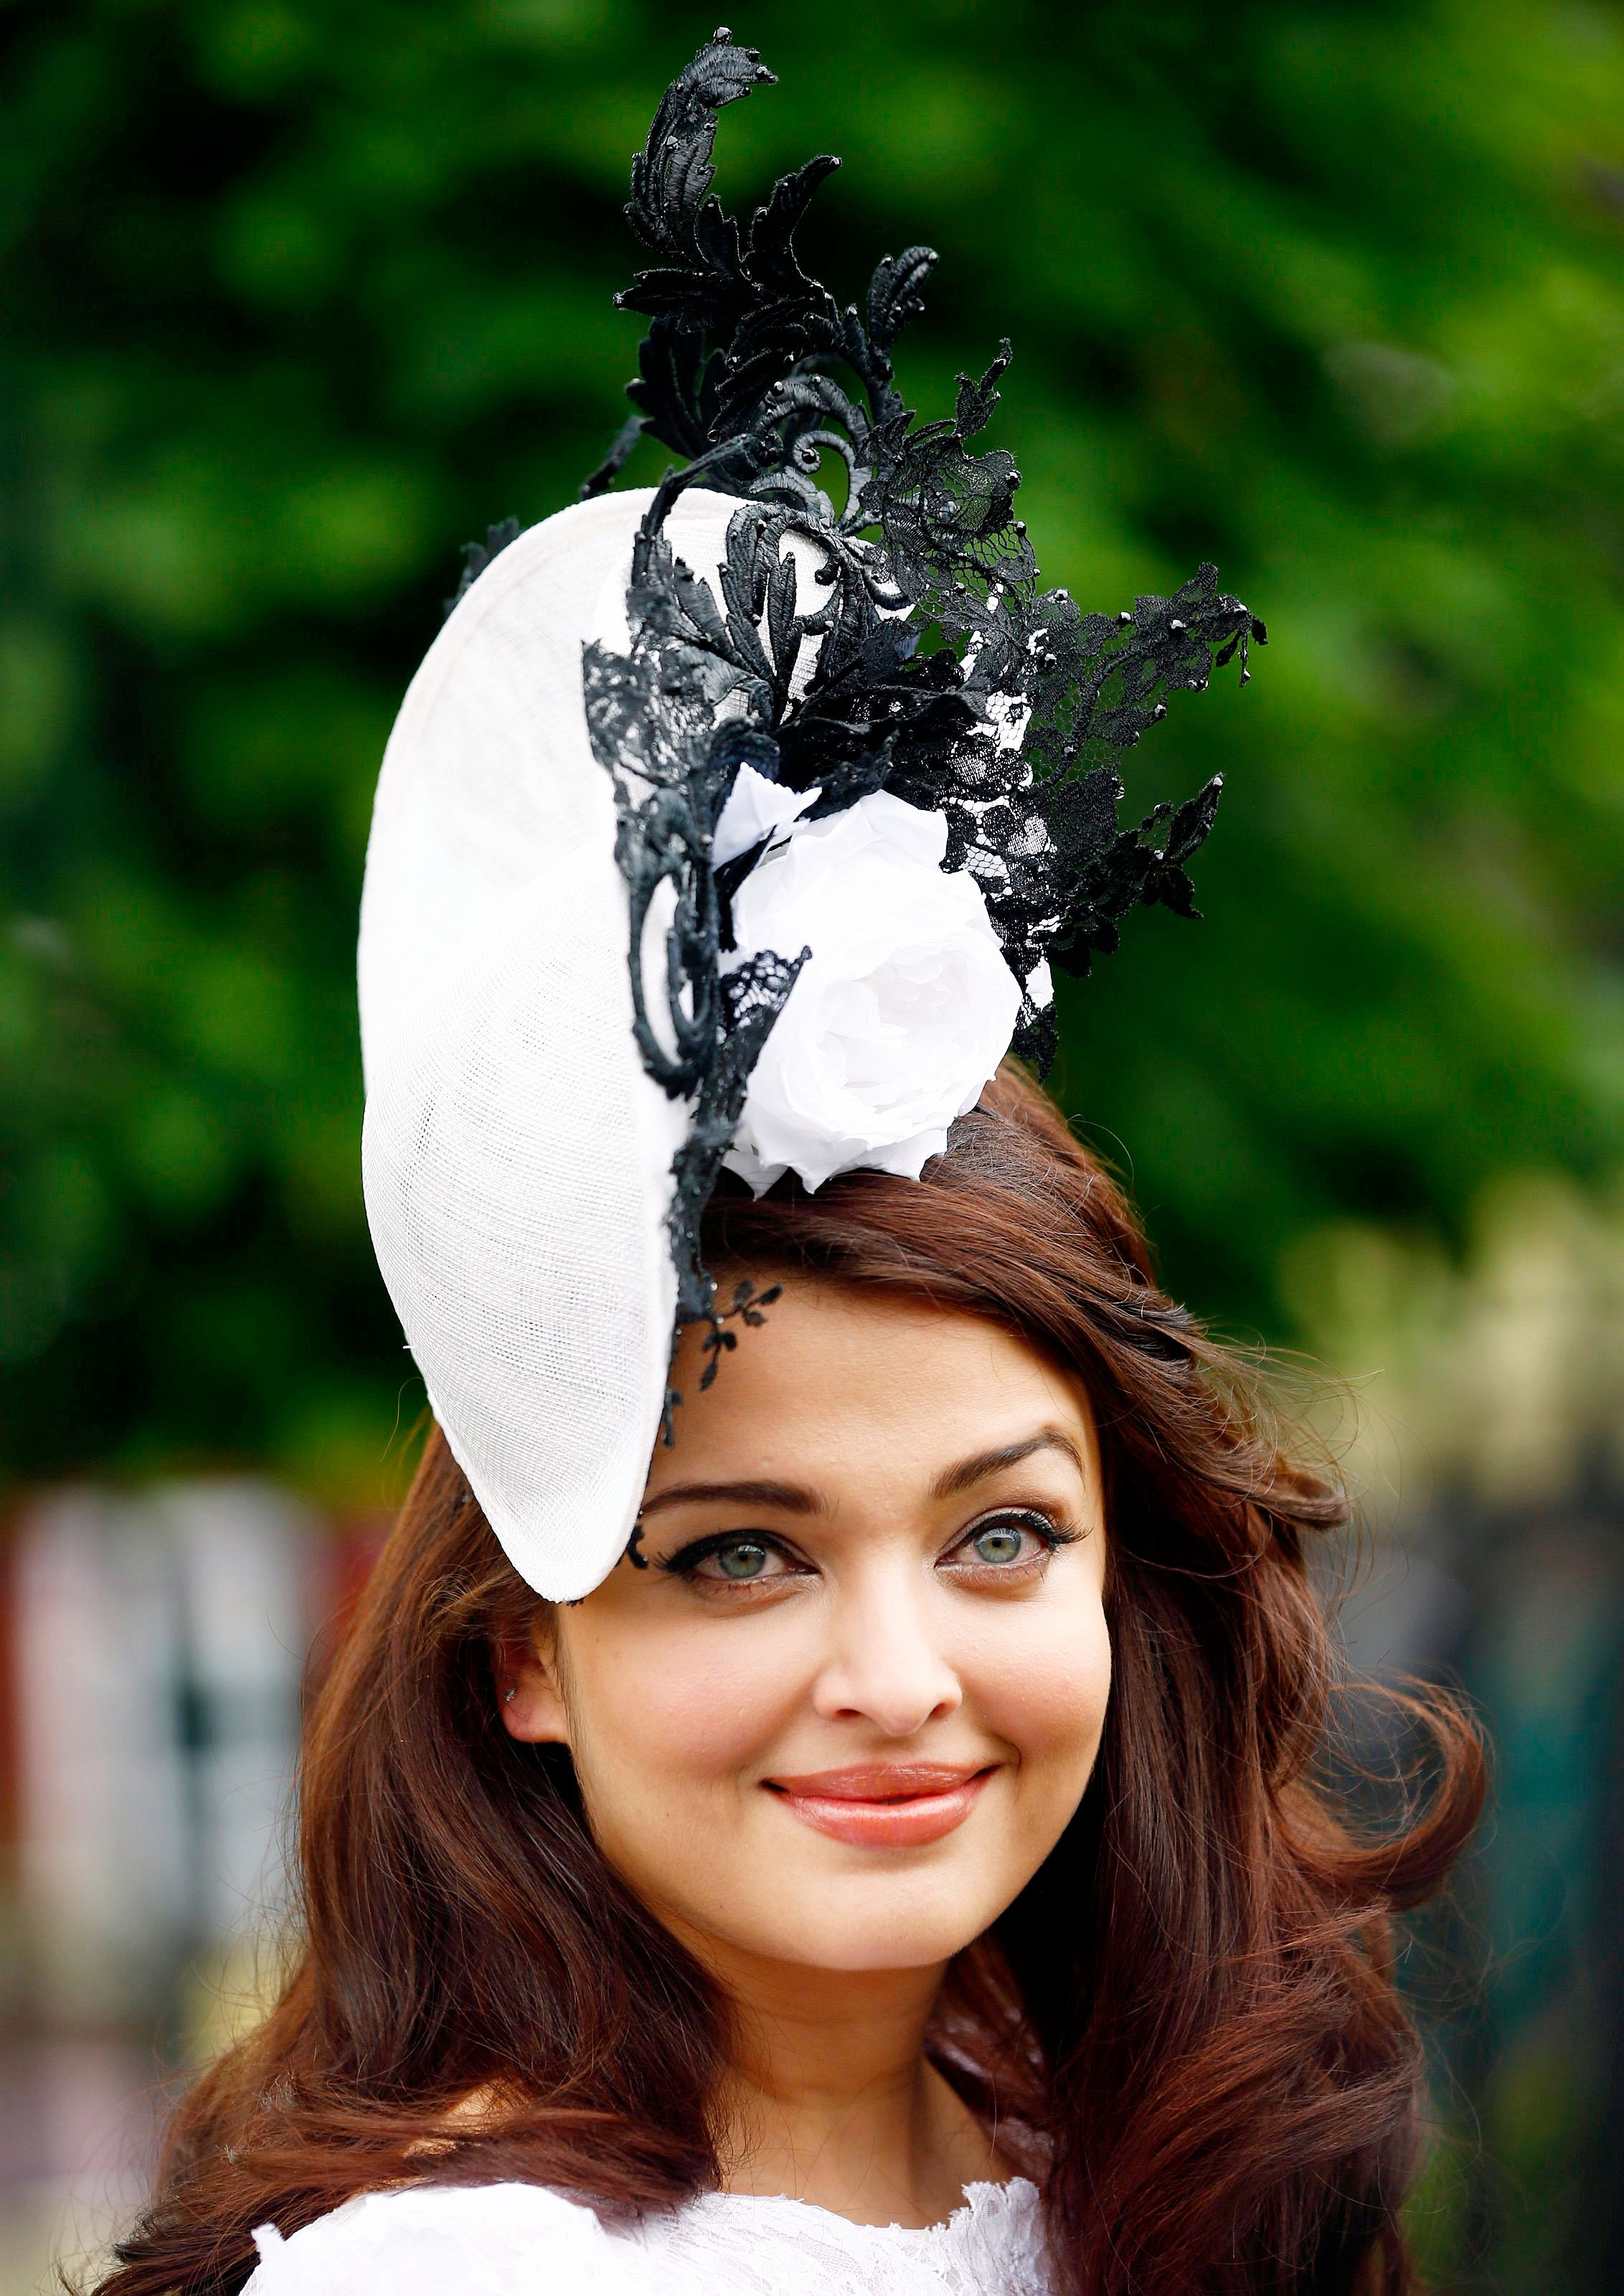 The fascinator which she wore at the race was by designer Philip Treacy.